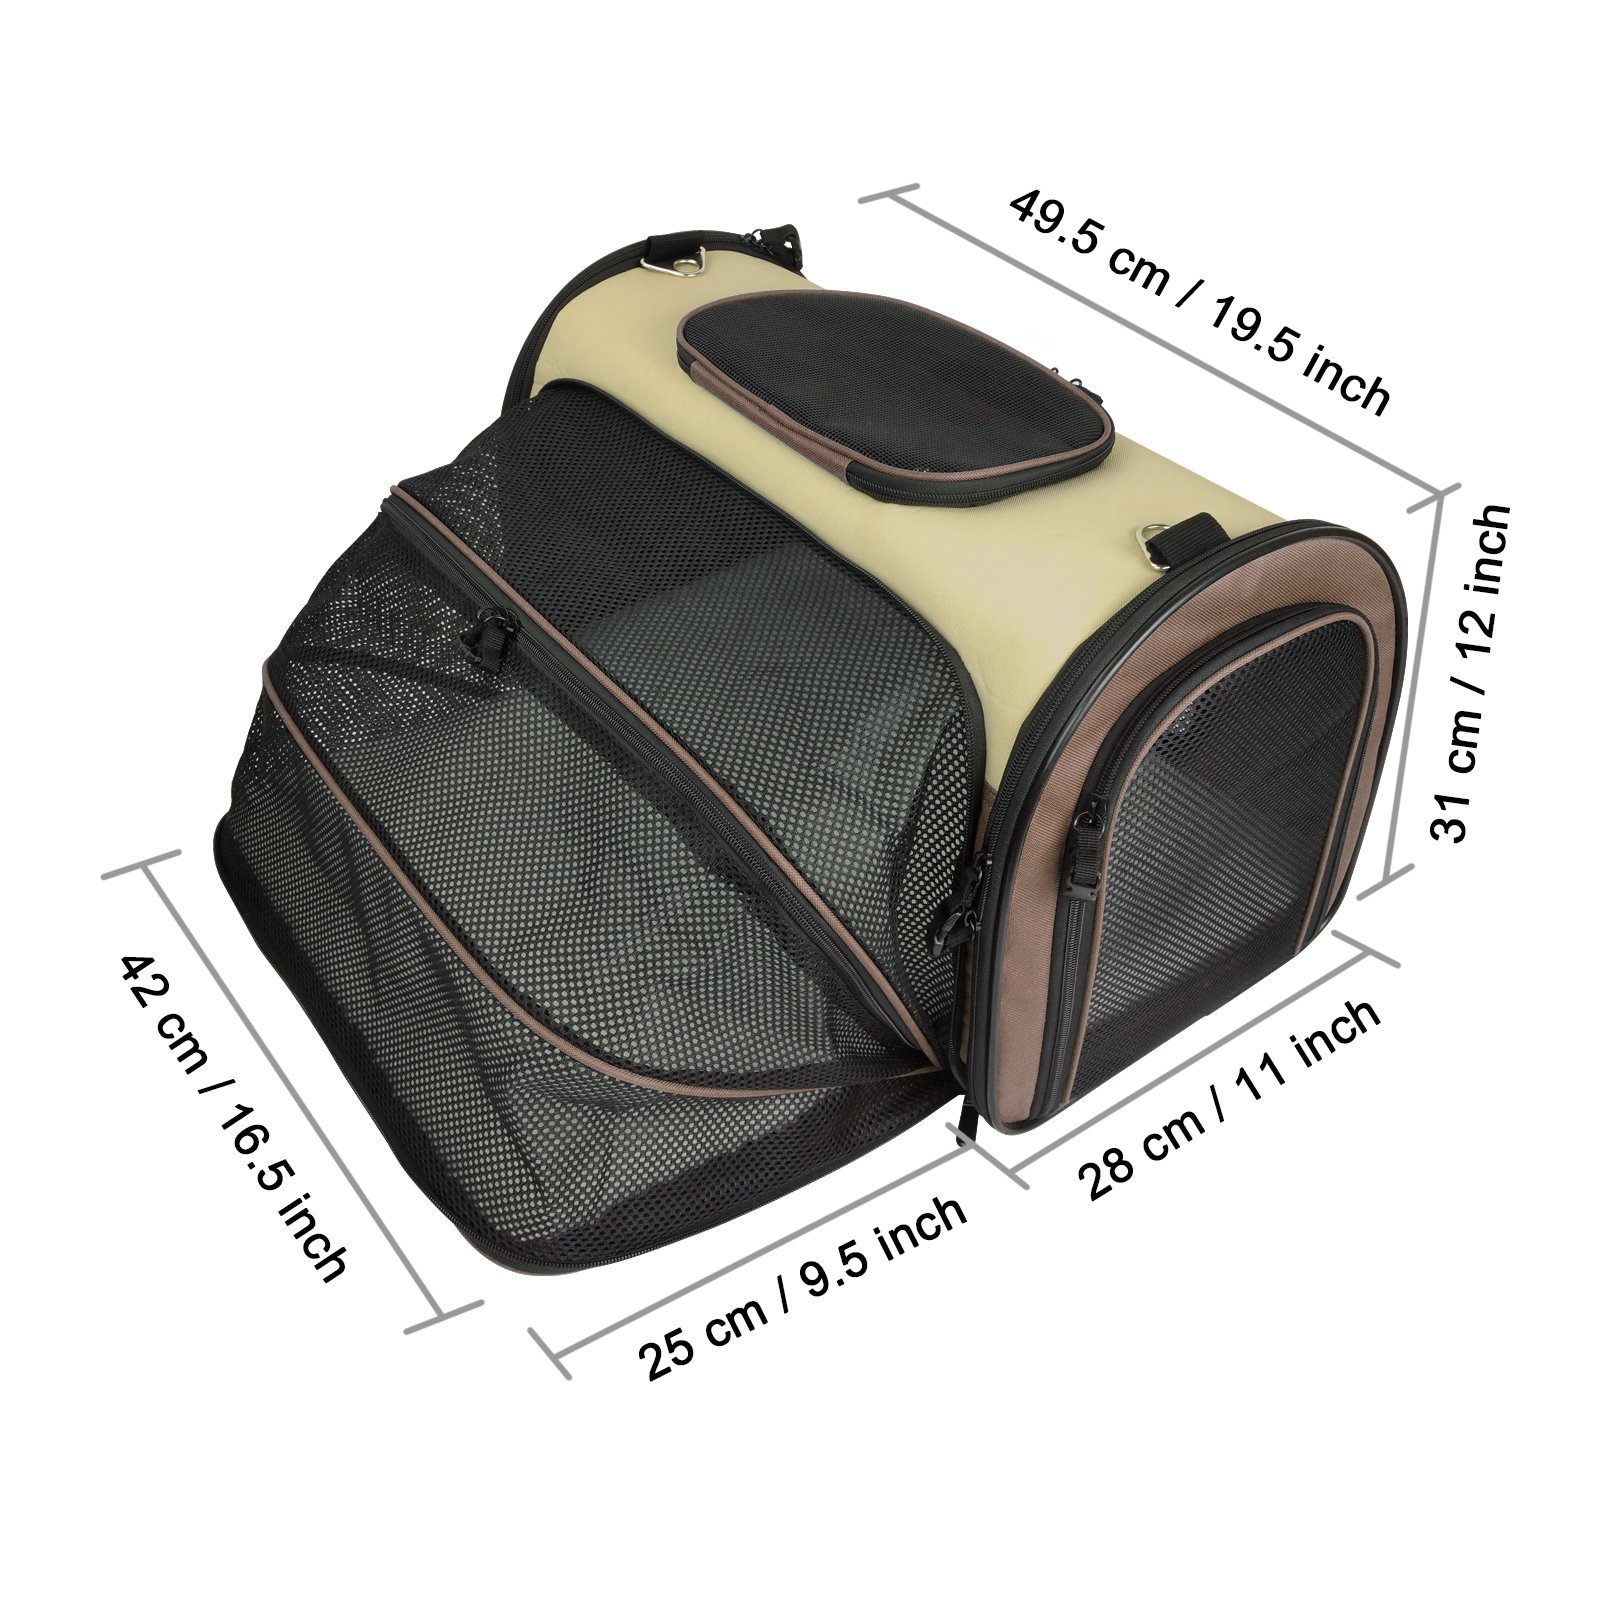 Becko Expandable Foldable Pet Carrier Travel Handbag with Padding and Extension (Brown)